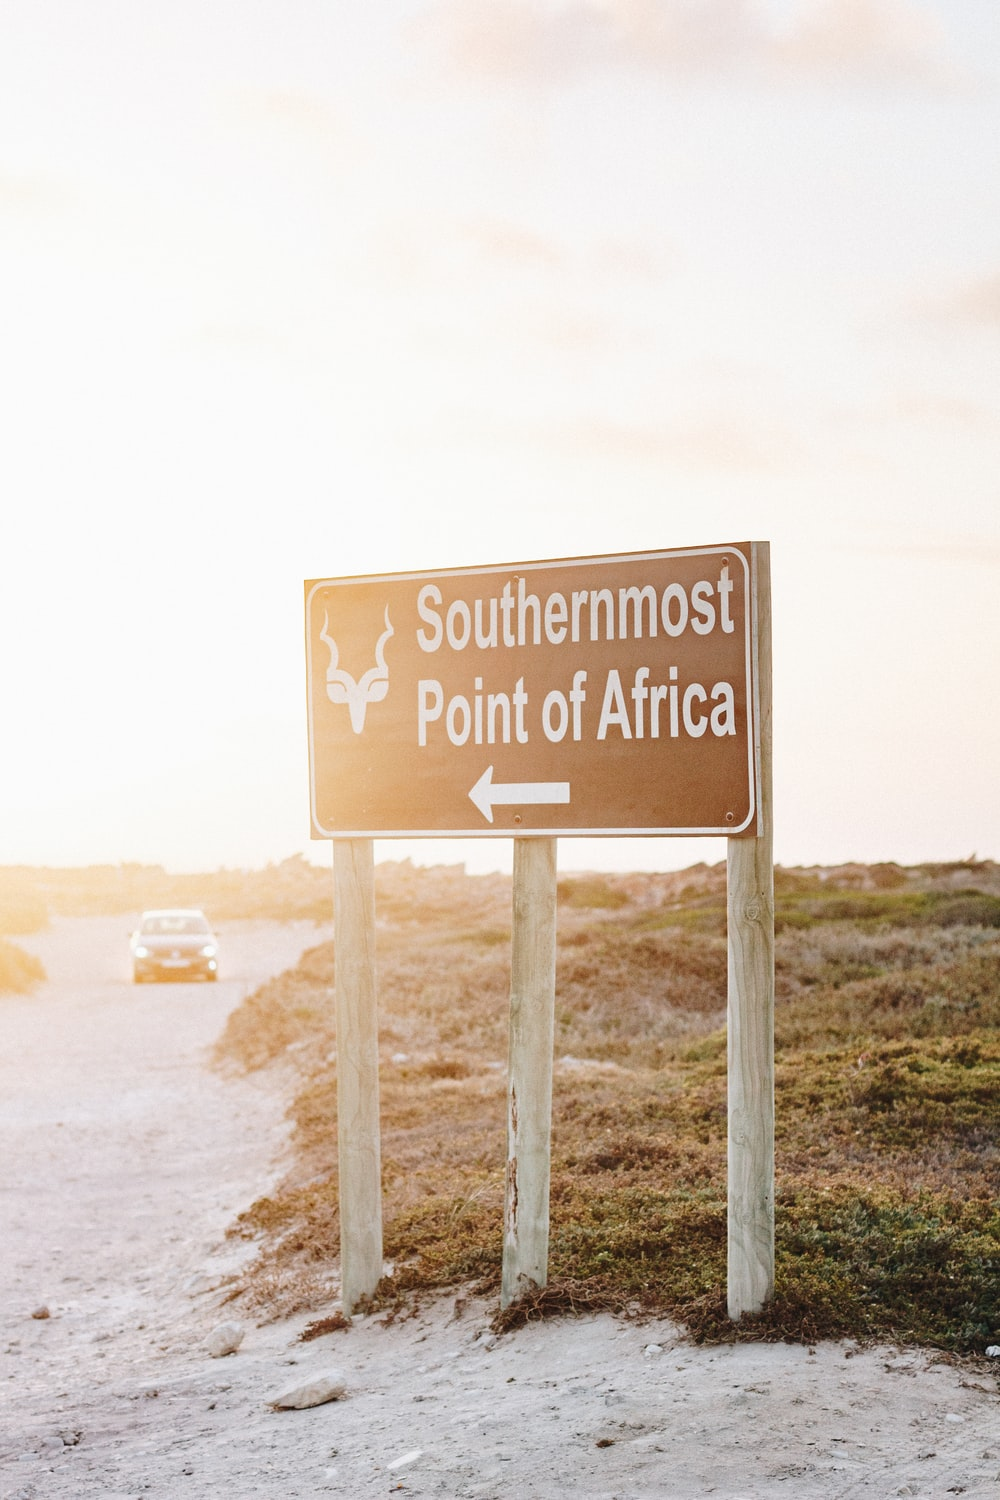 Southermost Point of Africa road sign and white vehicle on road during daytime